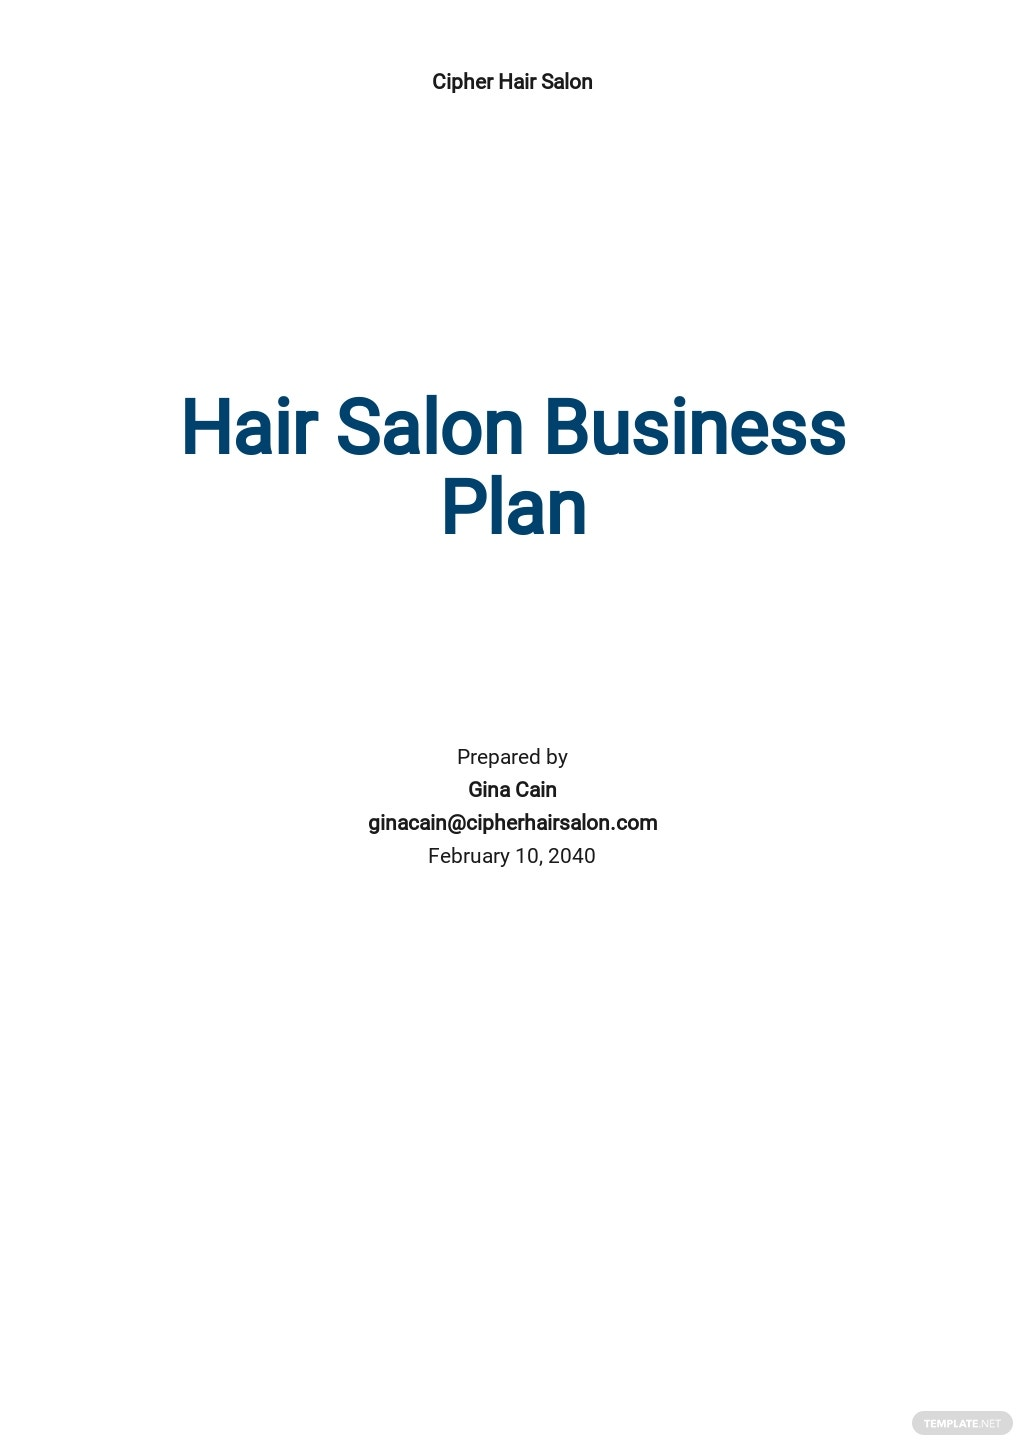 Hair Salon Business Plan Template